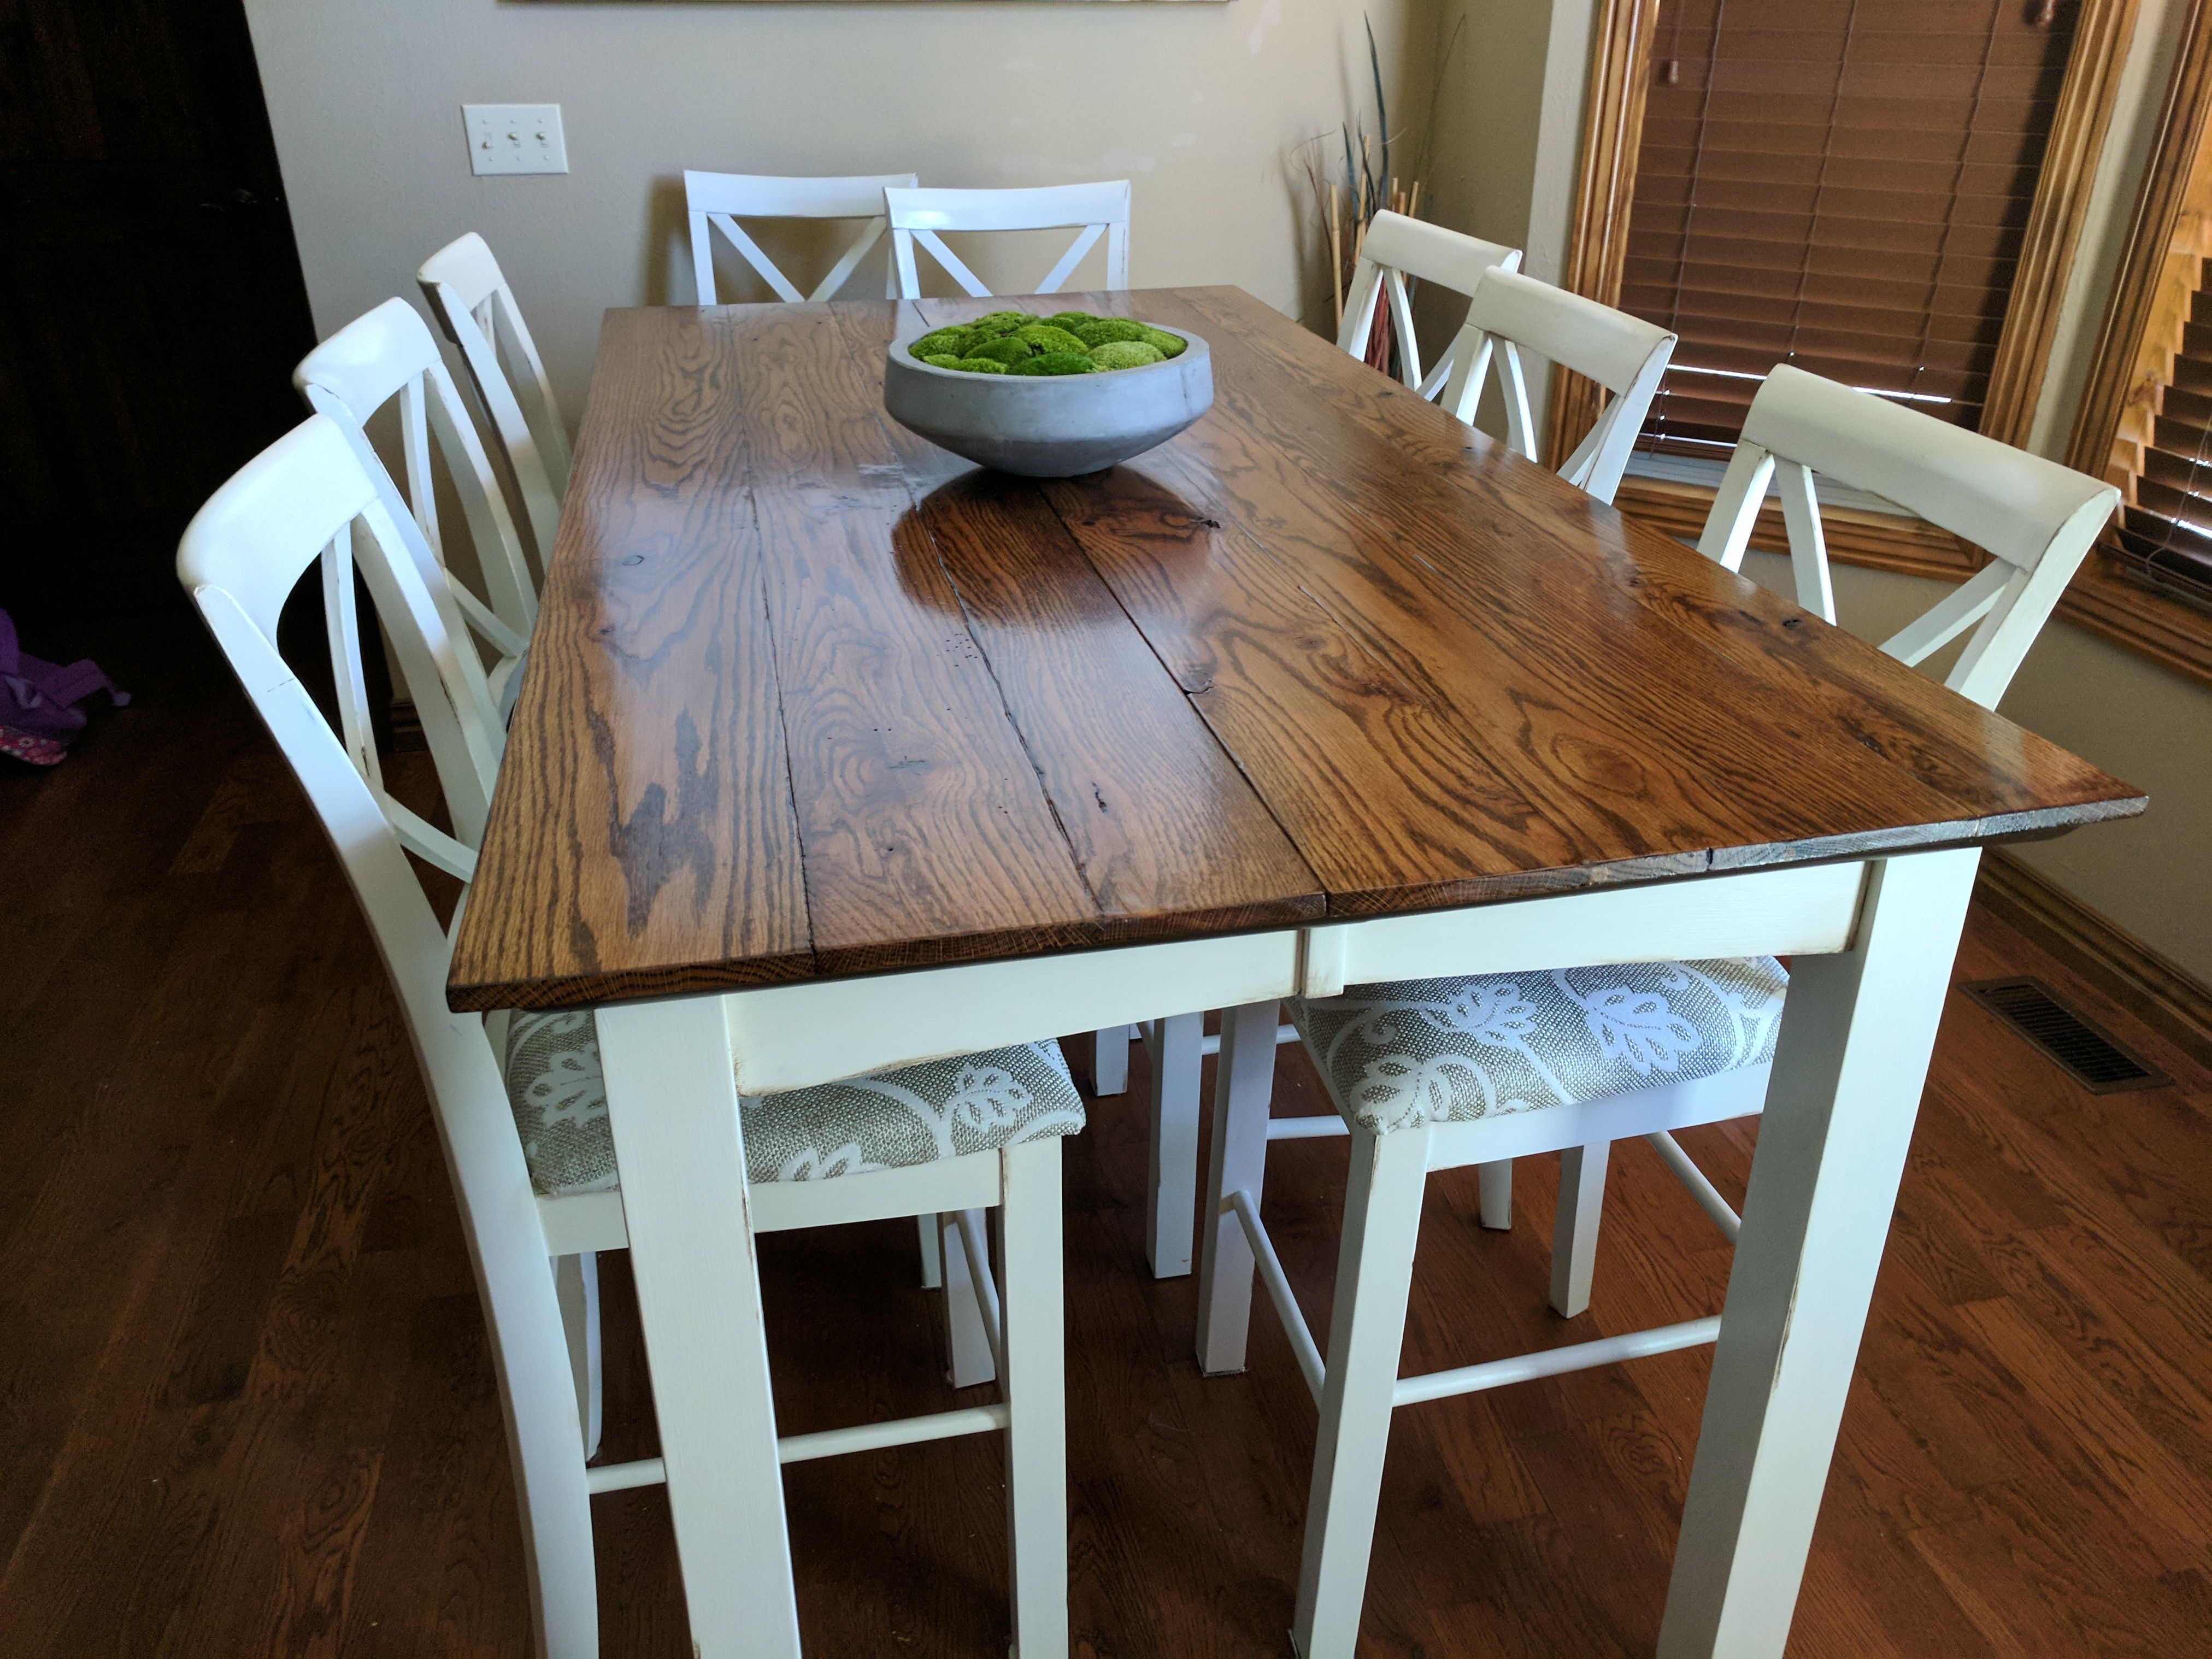 Added A New Top To Our Old Cheap Table And Increased The Size To Magnificent Size Of Dining Room Table For 10 Inspiration Design